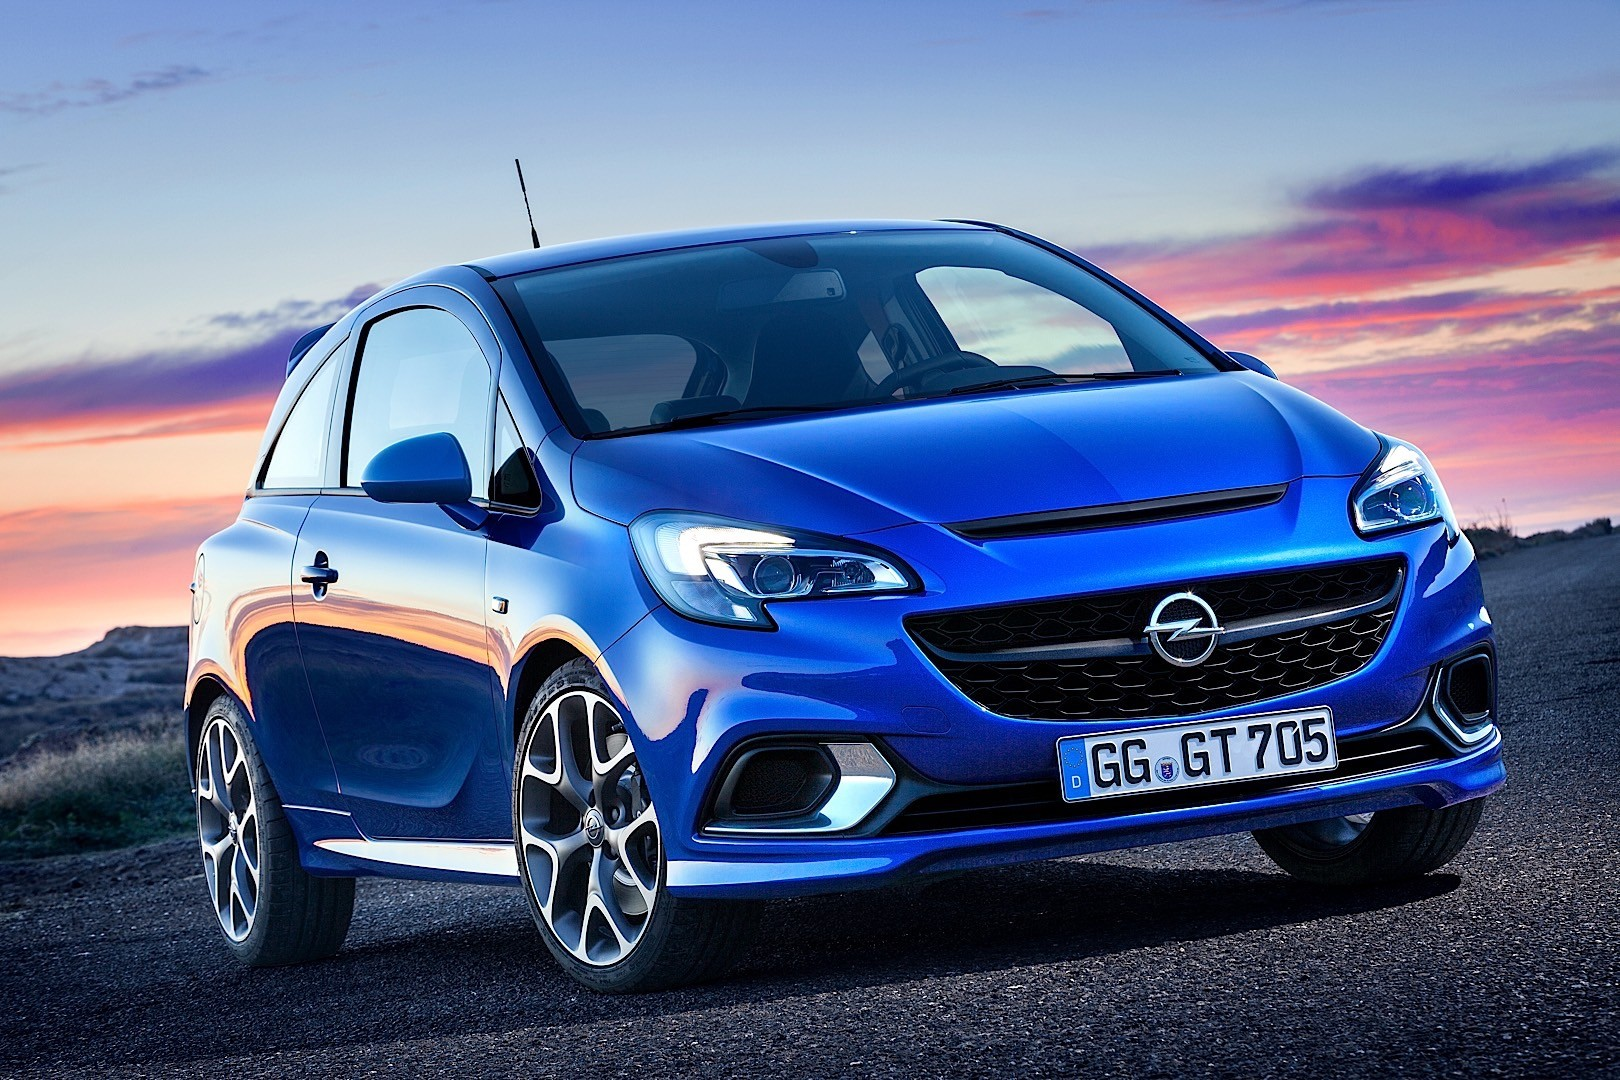 opel corsa opc specs photos 2015 2016 2017 2018 2019 autoevolution. Black Bedroom Furniture Sets. Home Design Ideas